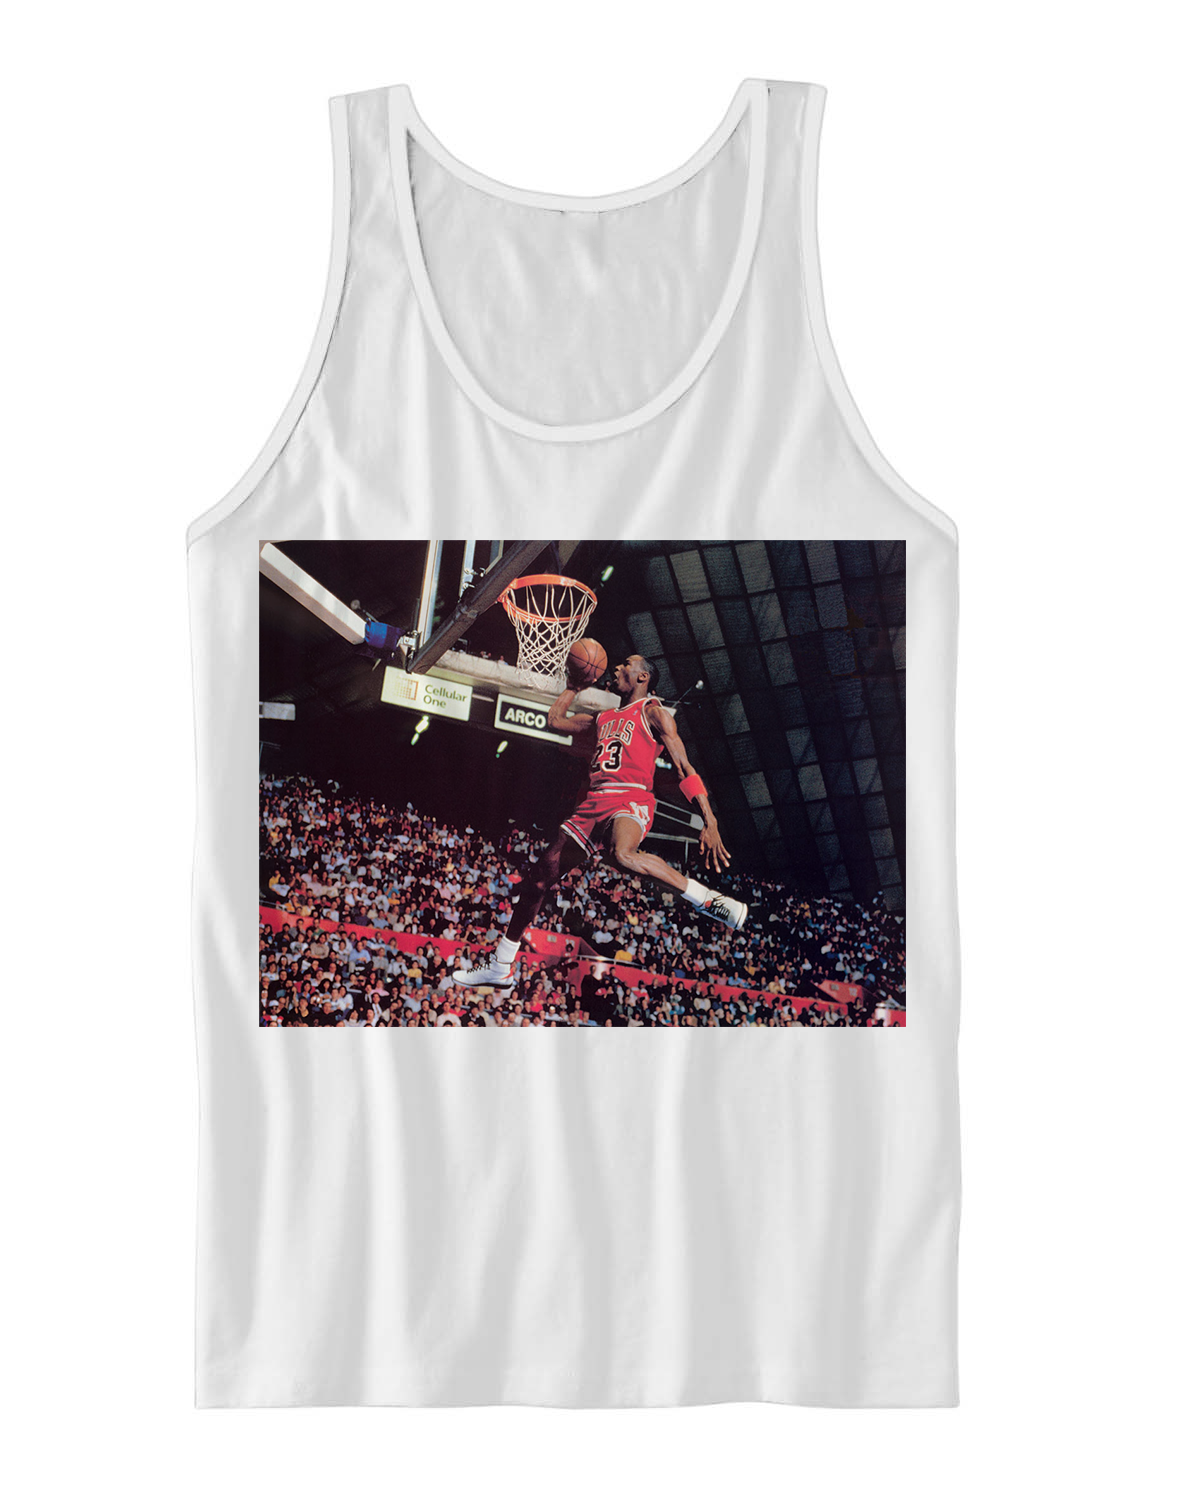 MICHAEL JORDAN CLASSIC DUNK TANK TOP BASKETBALL SHIRTS NBA ...